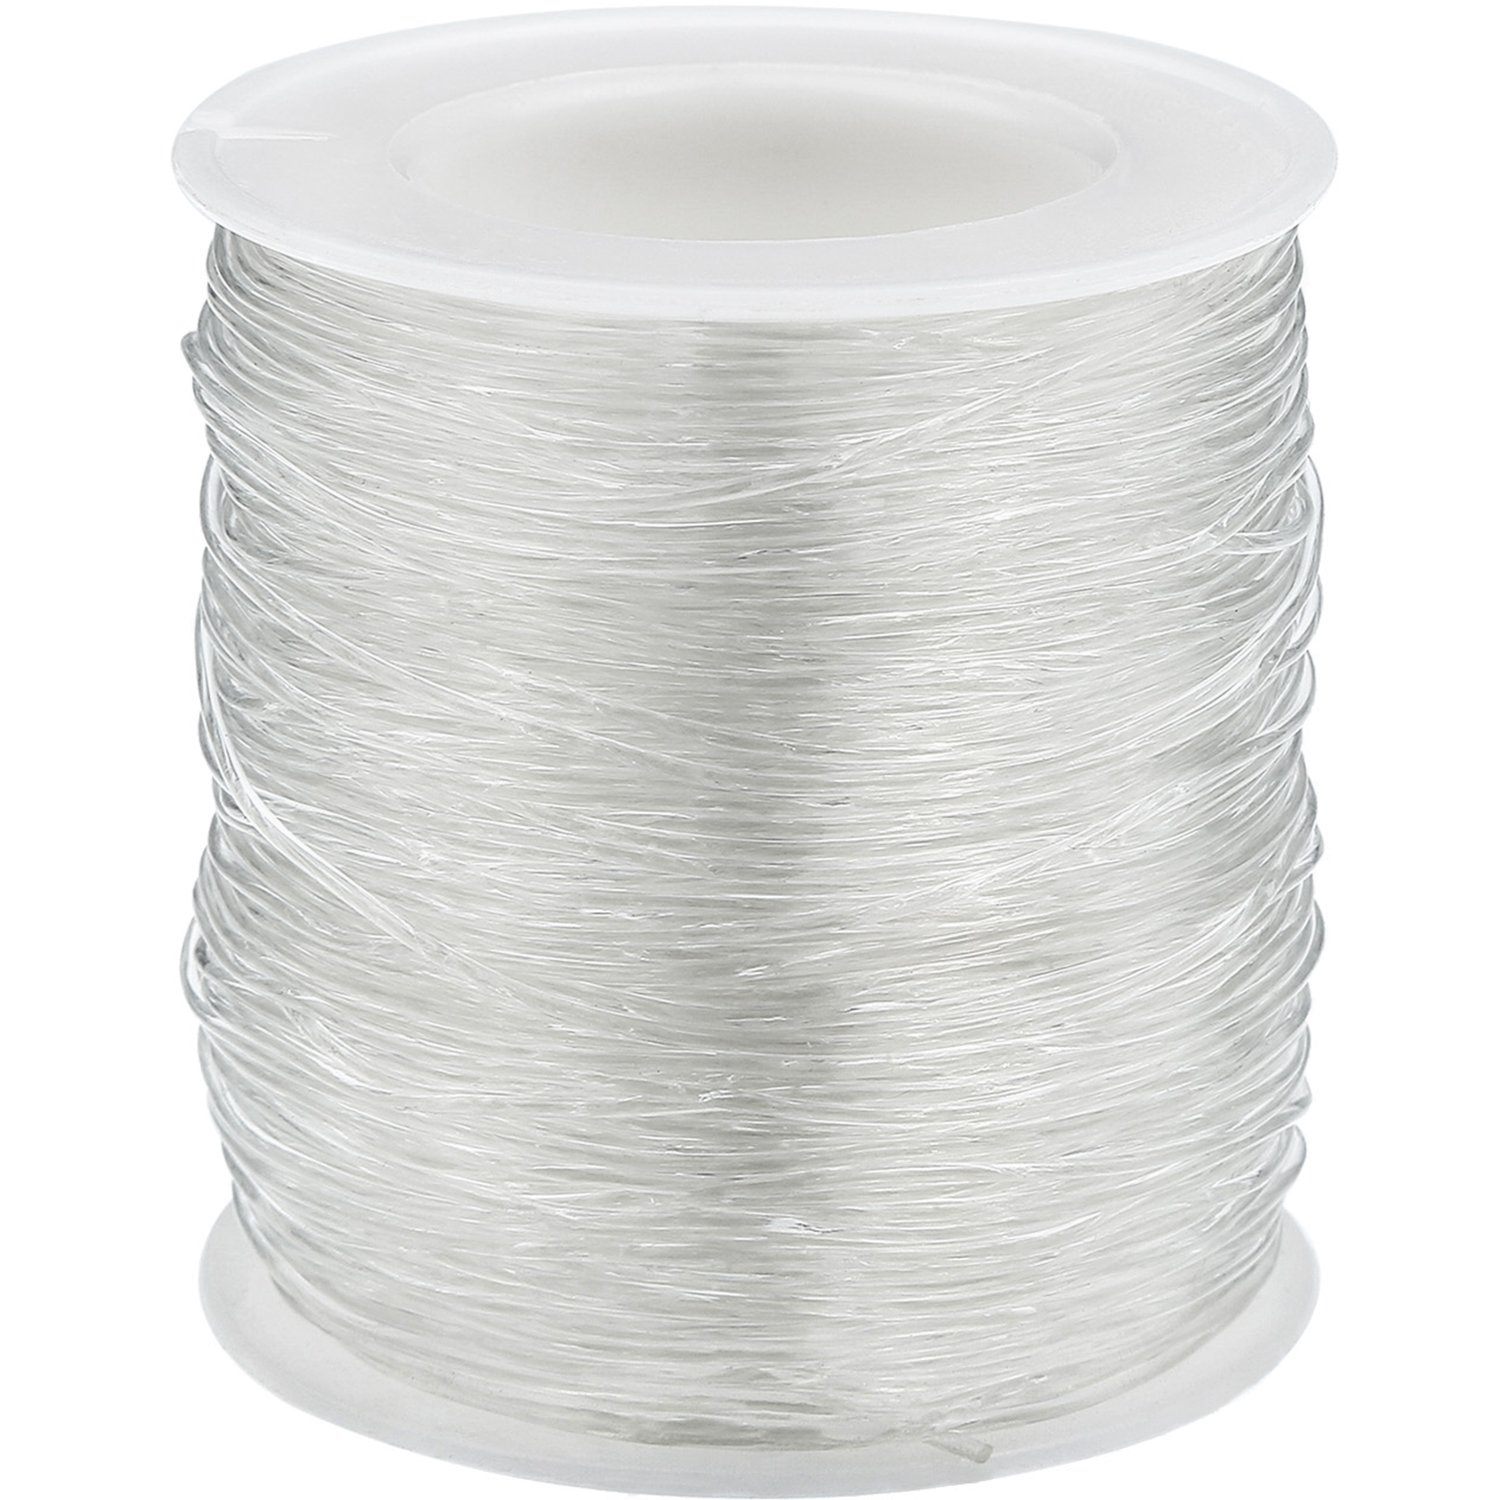 Bememo Elastic Clear Beading Thread Stretch Polyester String Cord for Jewelry Making and Crafts (1 mm, 80 Meters)